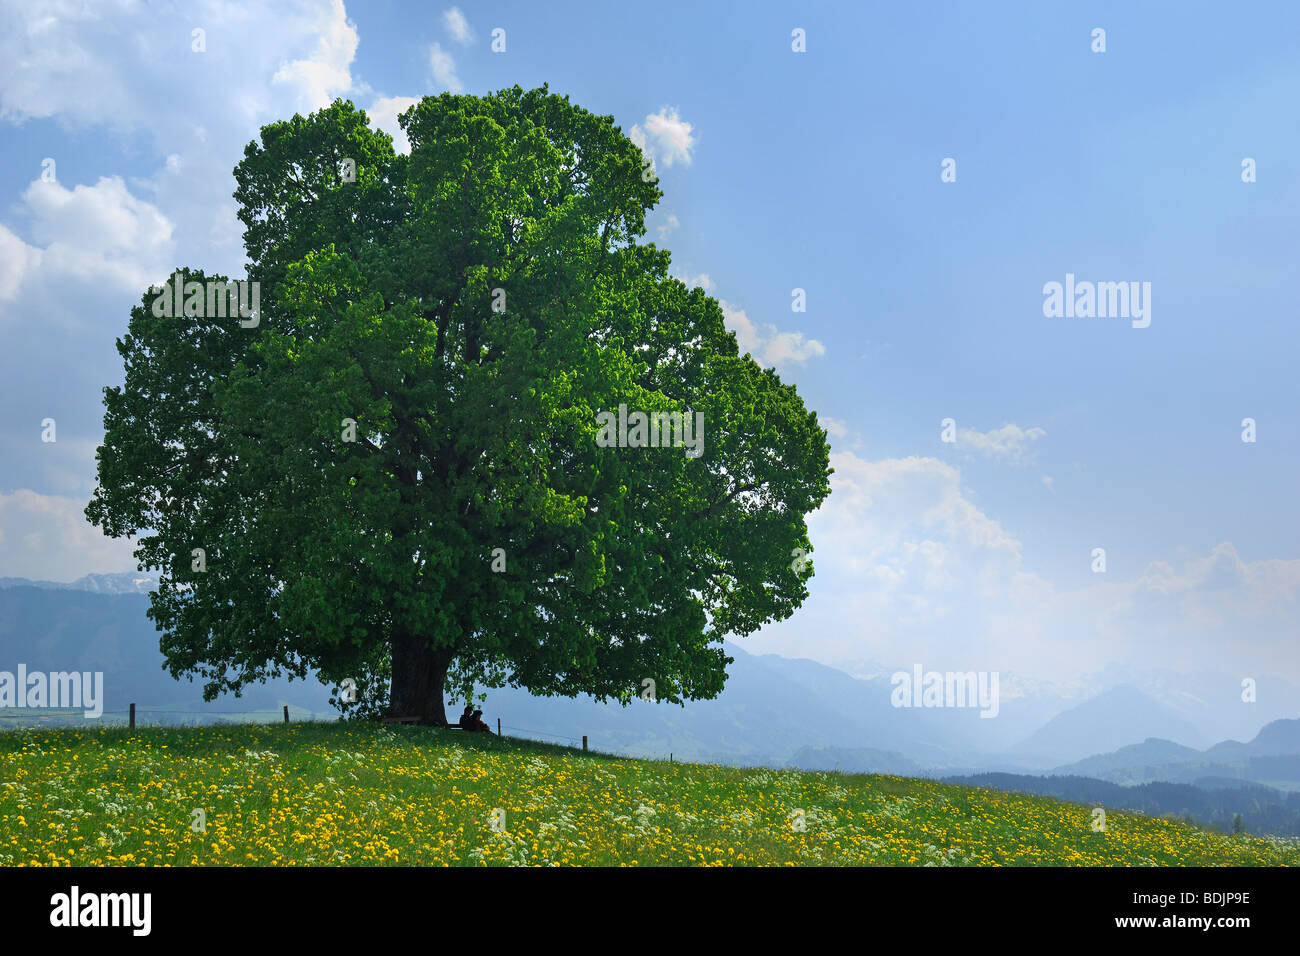 Lime Tree in Field, Ofterschwang, Allgaeu, Bavaria, Germany Stock Photo